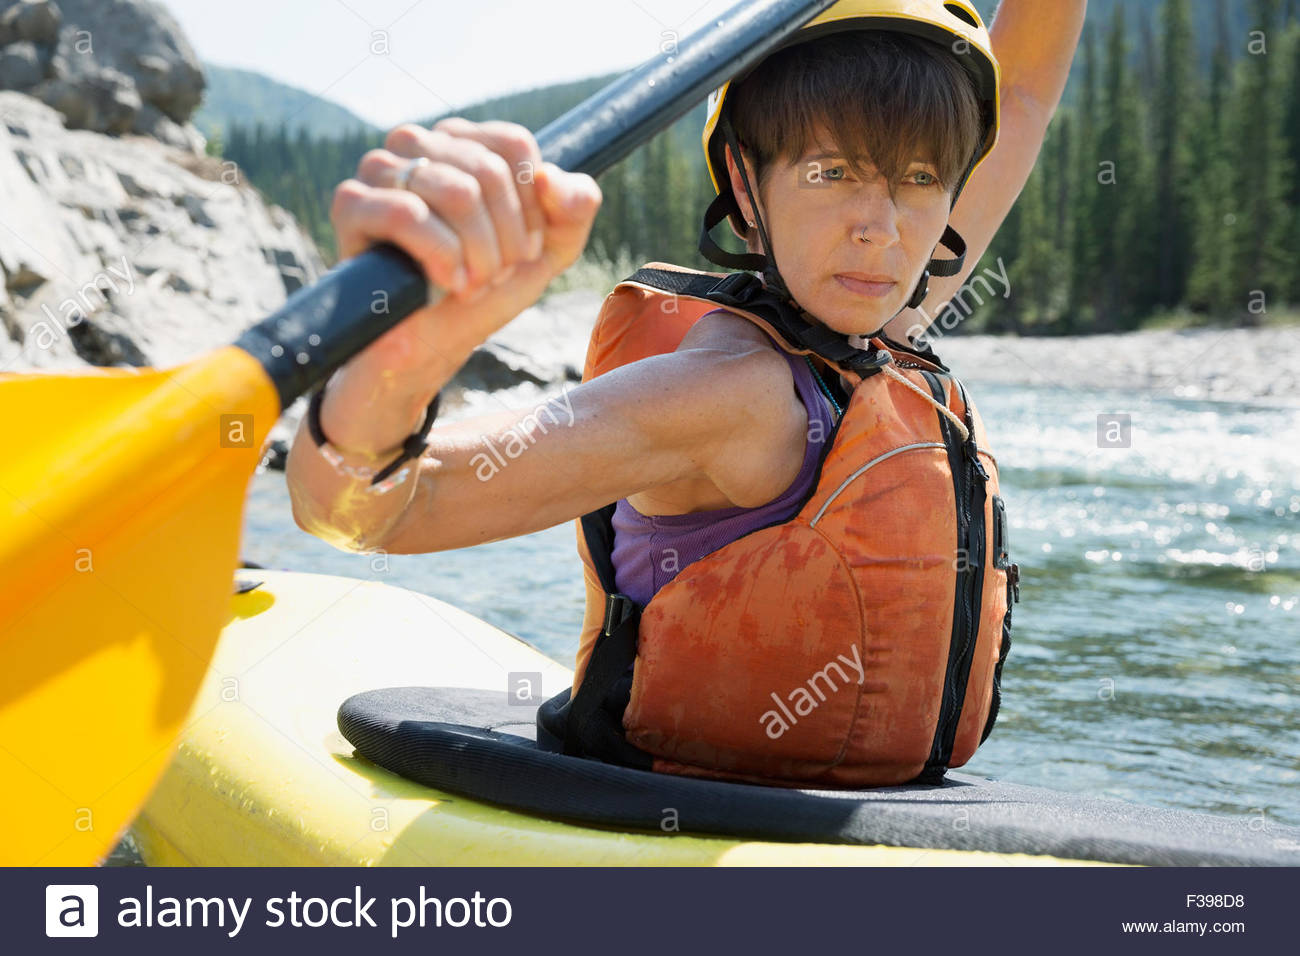 Close up determined woman kayaking in river - Stock Image